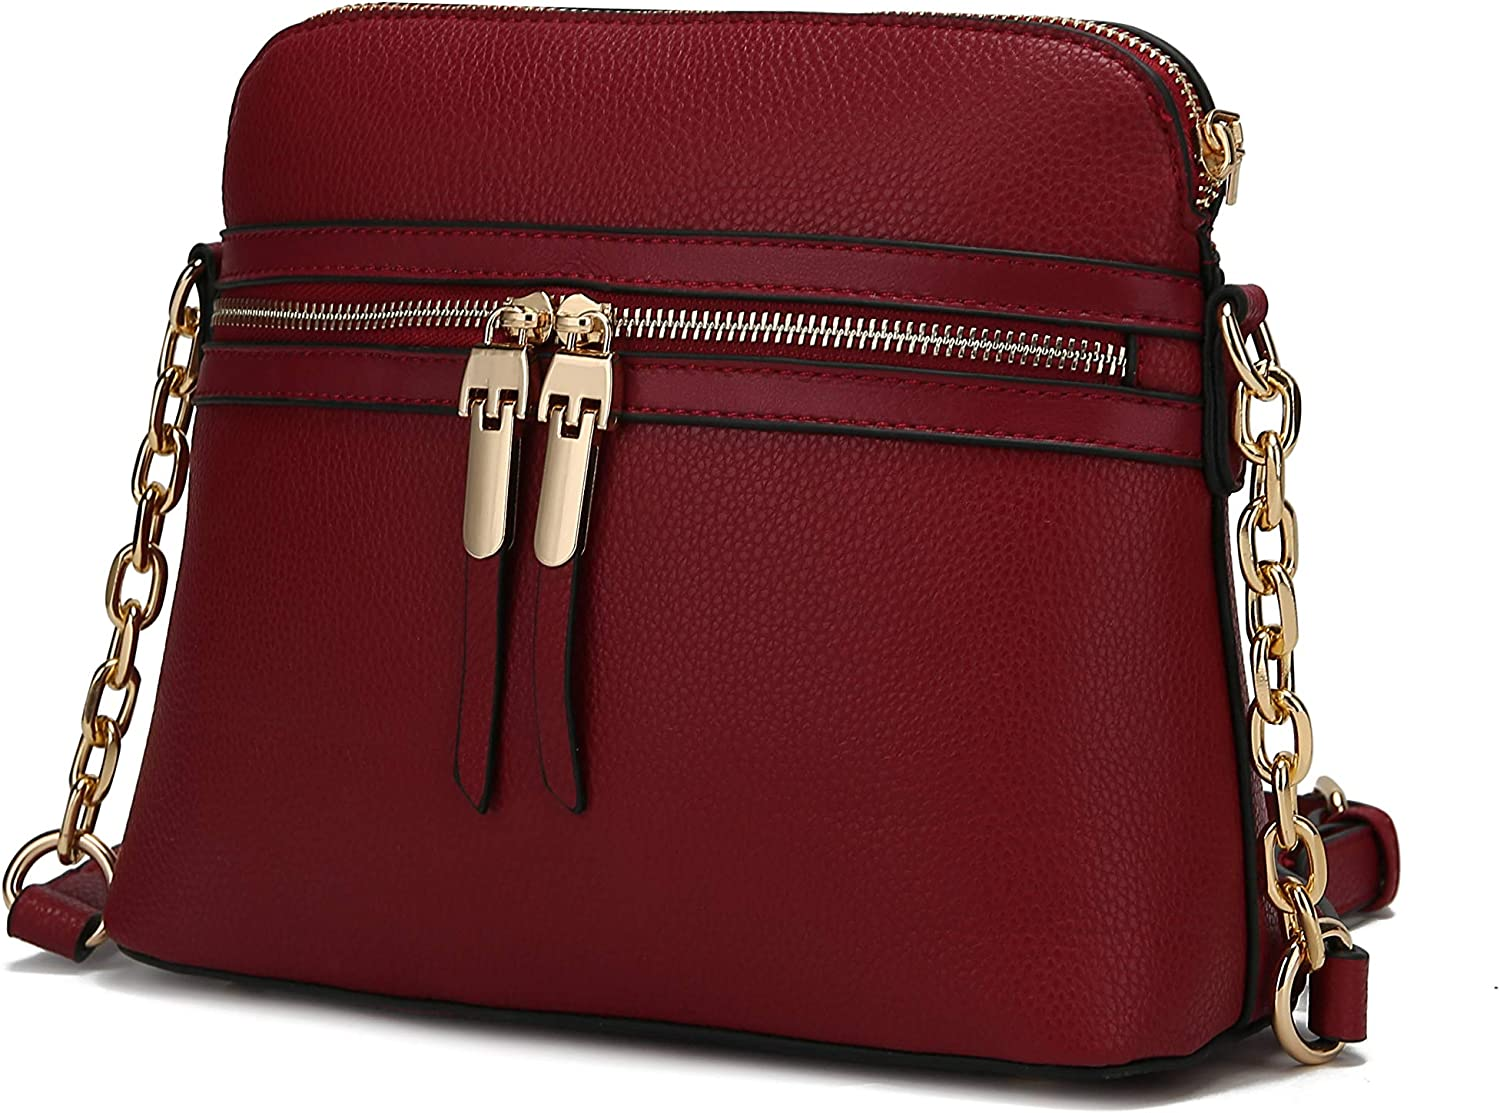 MKF Max 42% OFF Crossbody Bag for Women – Handbag PU Leather Clearance SALE Limited time Pocketbook